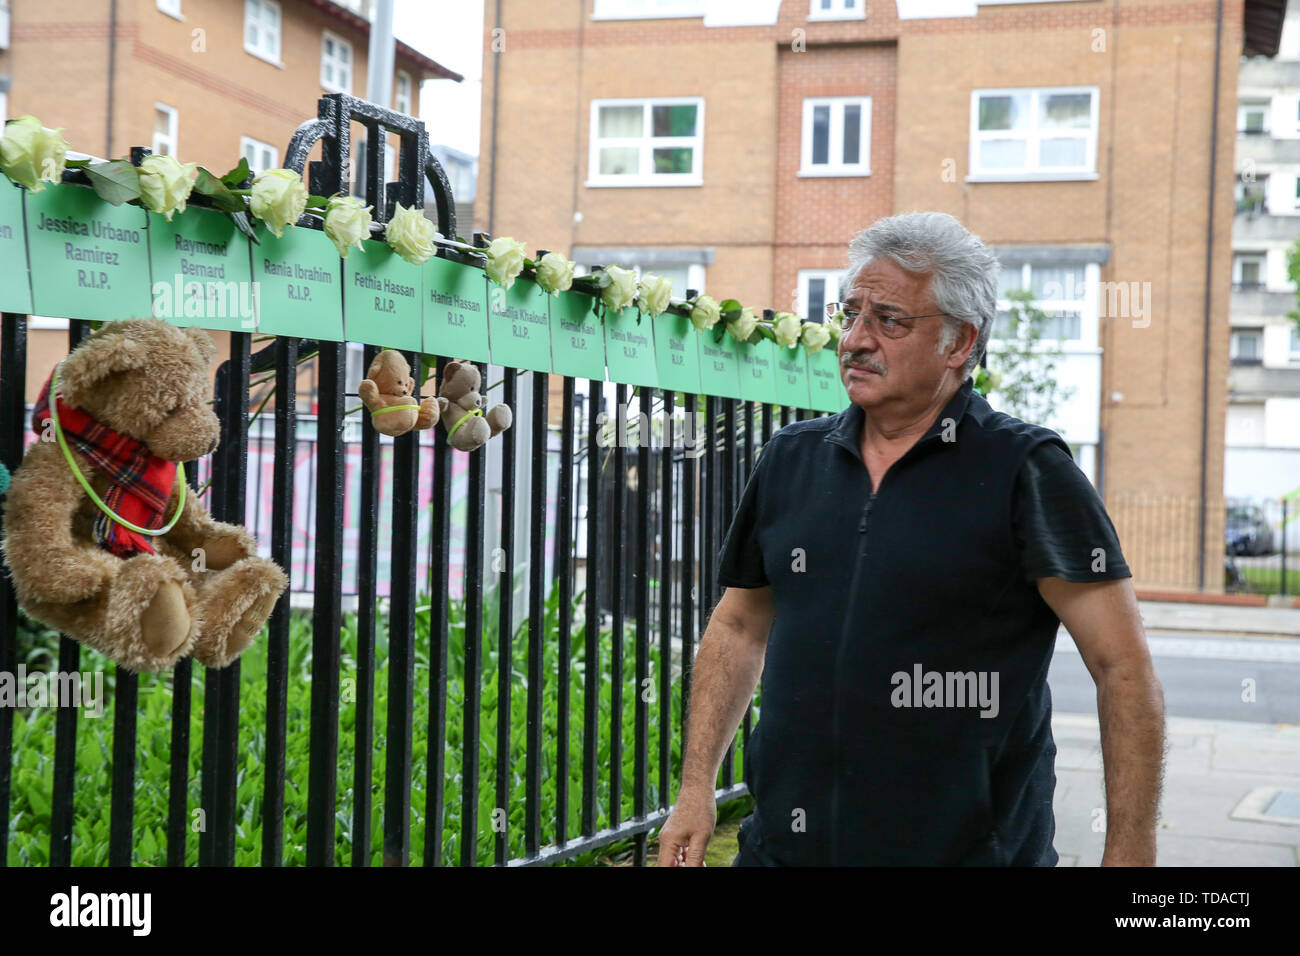 North Kensington, West London. UK 14 Jun 2019 - The names of people who lost their lives, hung from railings on a block of flats to commemorate the second anniversary of the Grenfell Tower fire. On 14 June 2017, just before 1:00Êam a fire broke out in the kitchen of the fourth floor flat at the 24-storey residential tower block in North Kensington, West London, which took the lives of 72 people. More than 70 others were injured and 223 people escaped.  Credit: Dinendra Haria/Alamy Live News - Stock Image